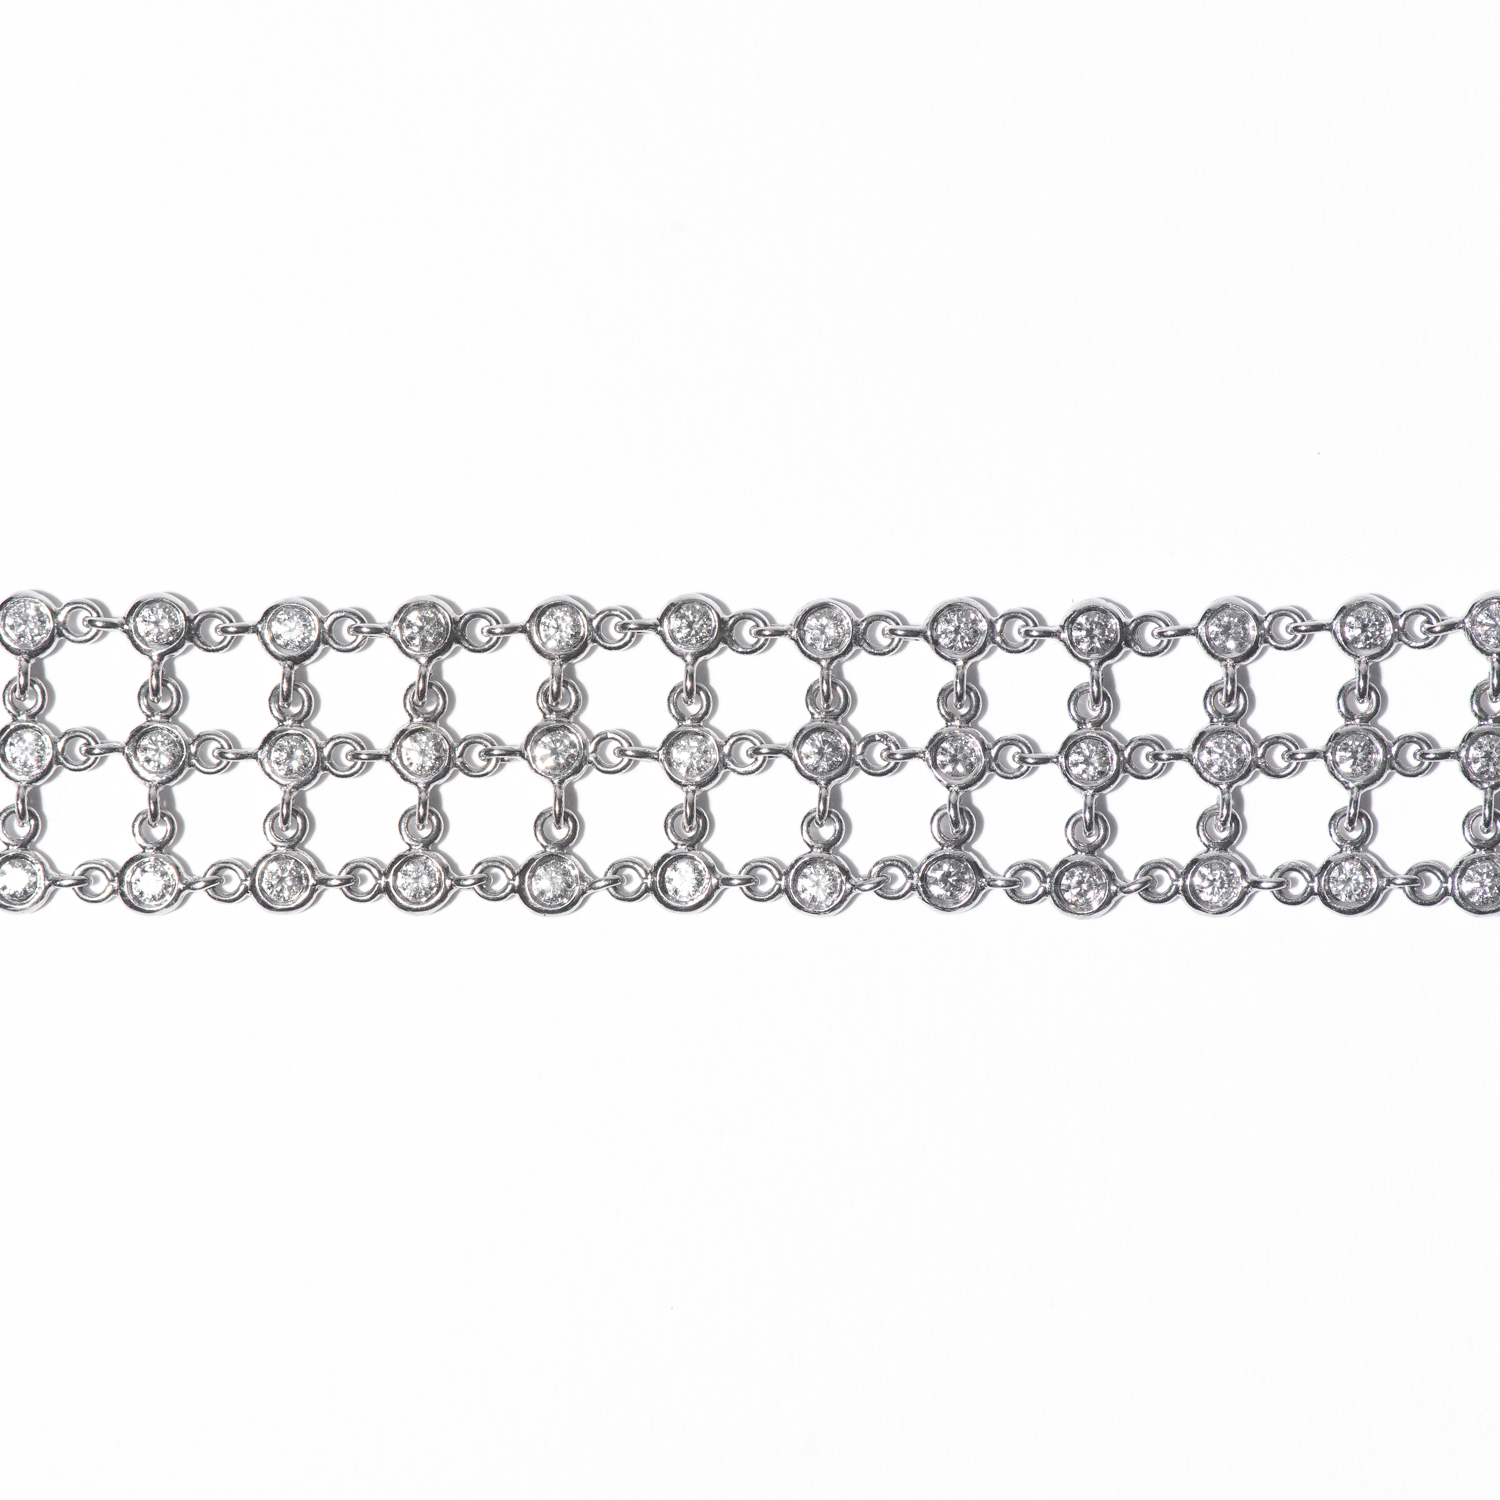 Design Ten. - 18K White Gold 3 Row Bezel Set Diamond Bracelet.